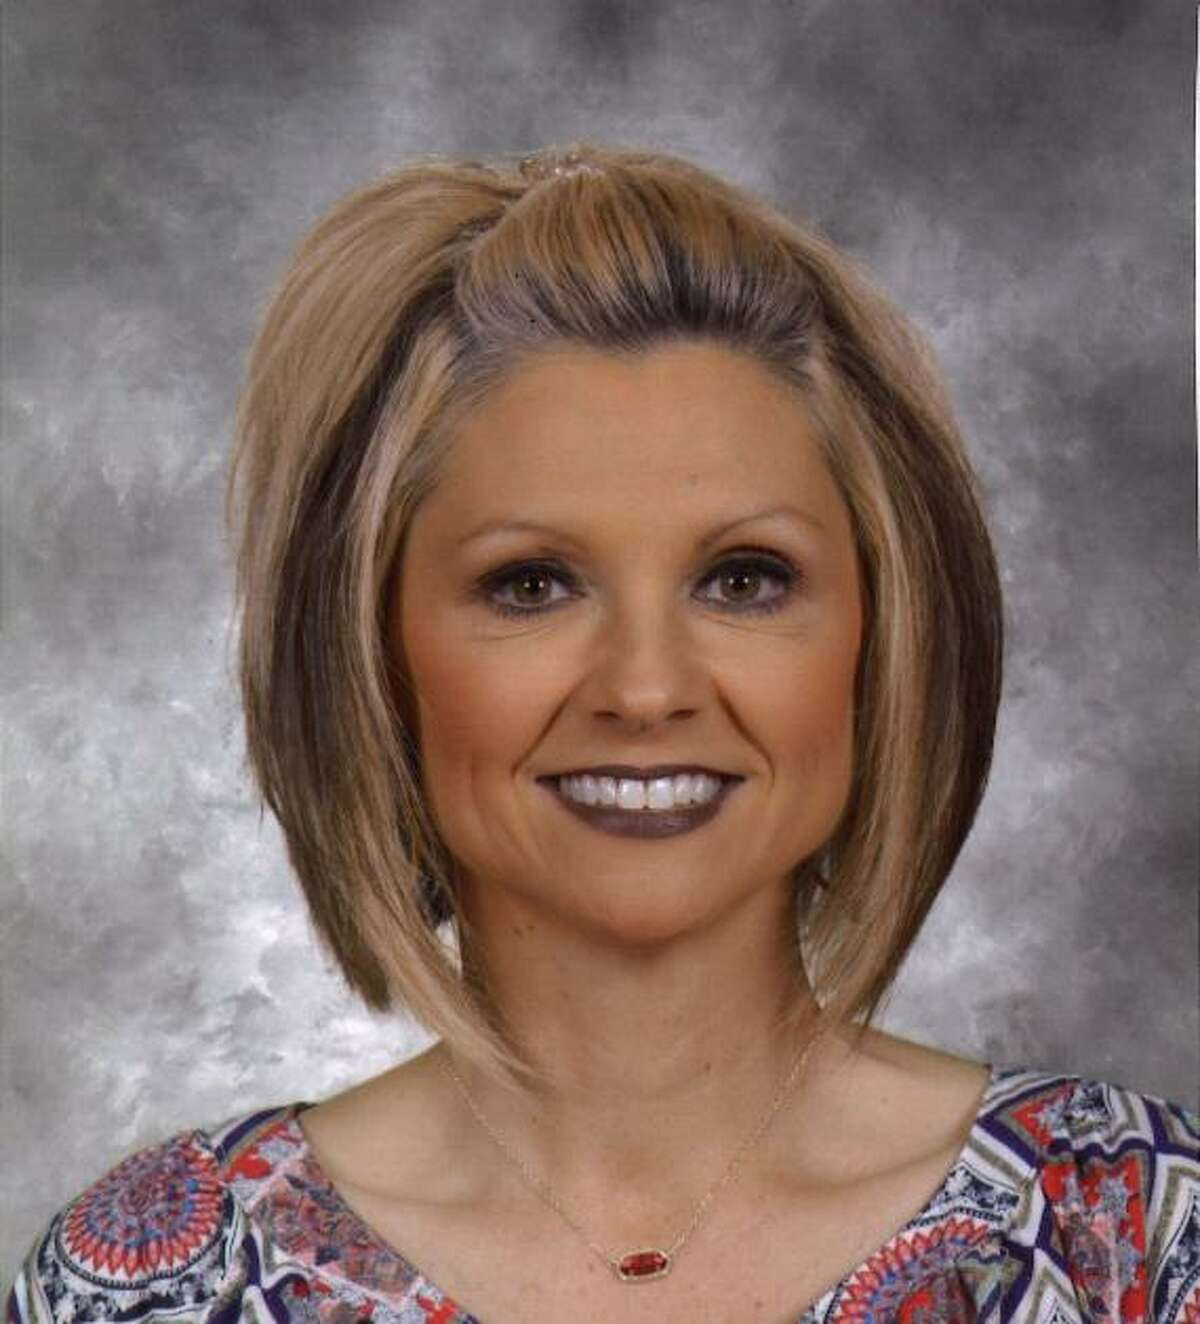 Montgomery Independent School District Superintendent Dr. Heath Morrison has named Montgomery Elementary School Principal Carrie Fitzpatrick as the district's new Assistant Superintendent of Elementary Education.